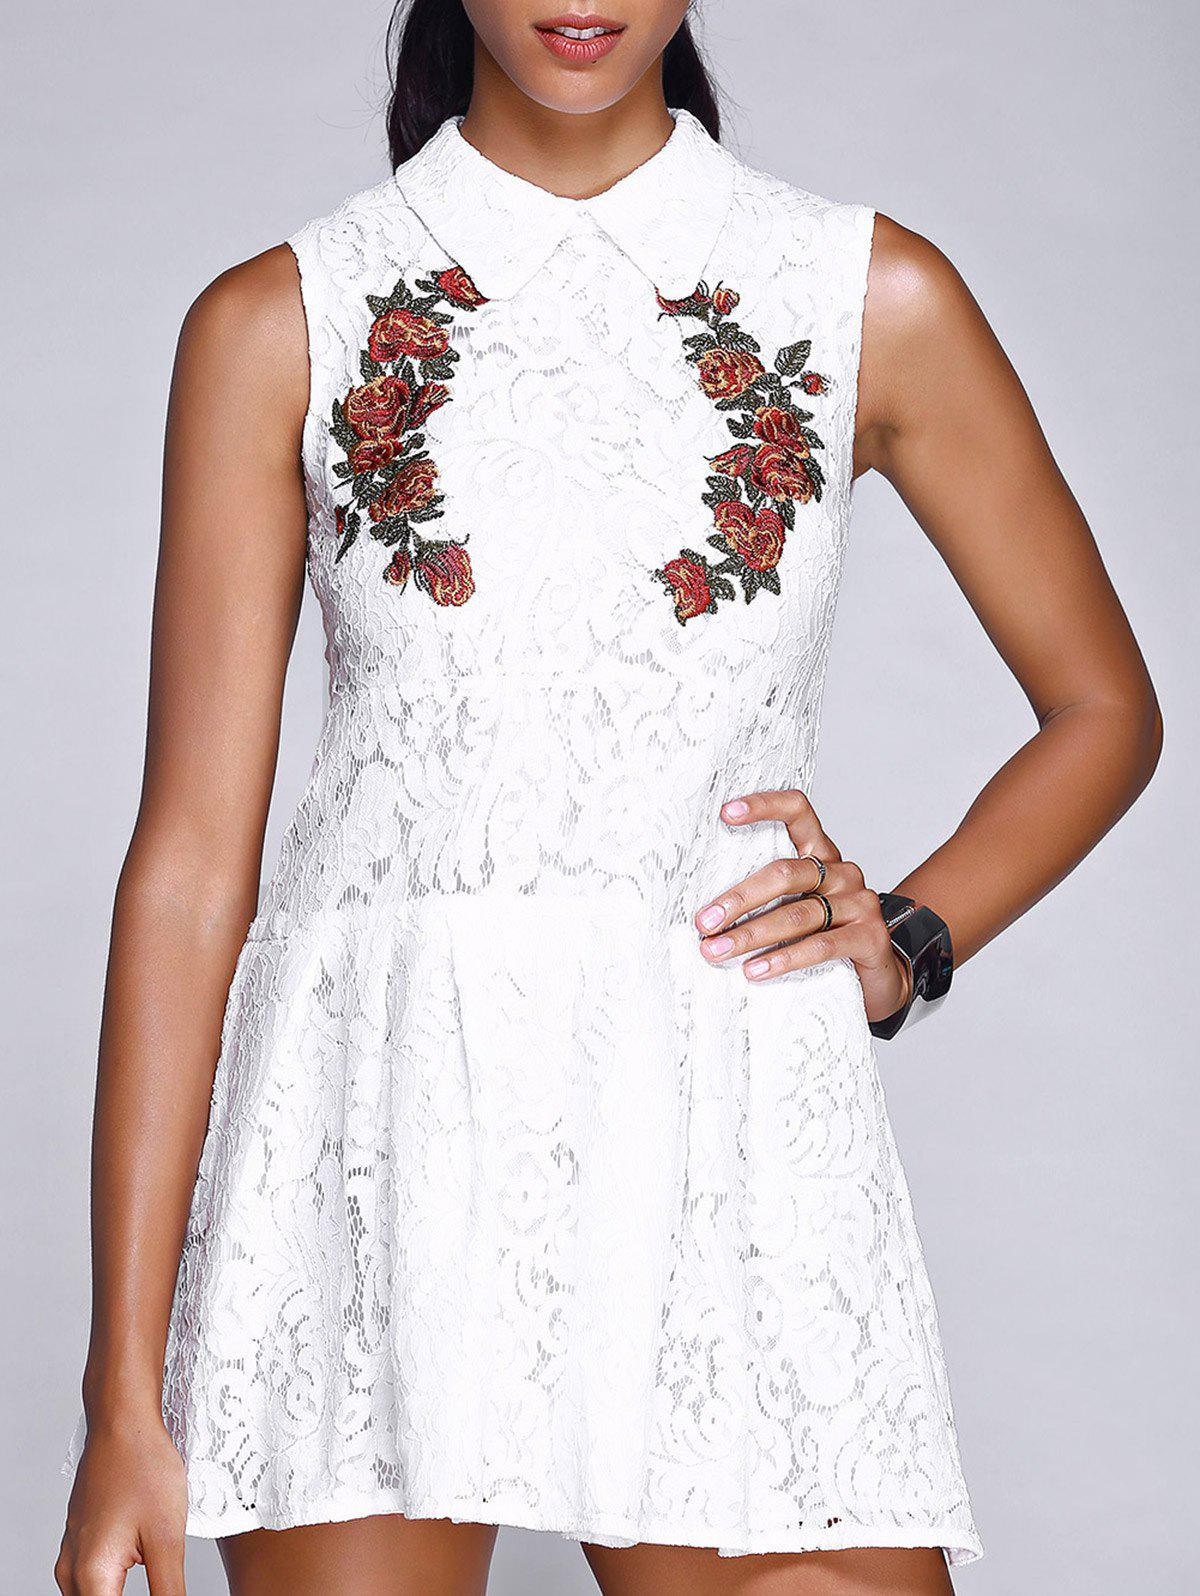 Peter Pan Collar Floral Embroidered Pleated Ladylike Women's Lace Dress